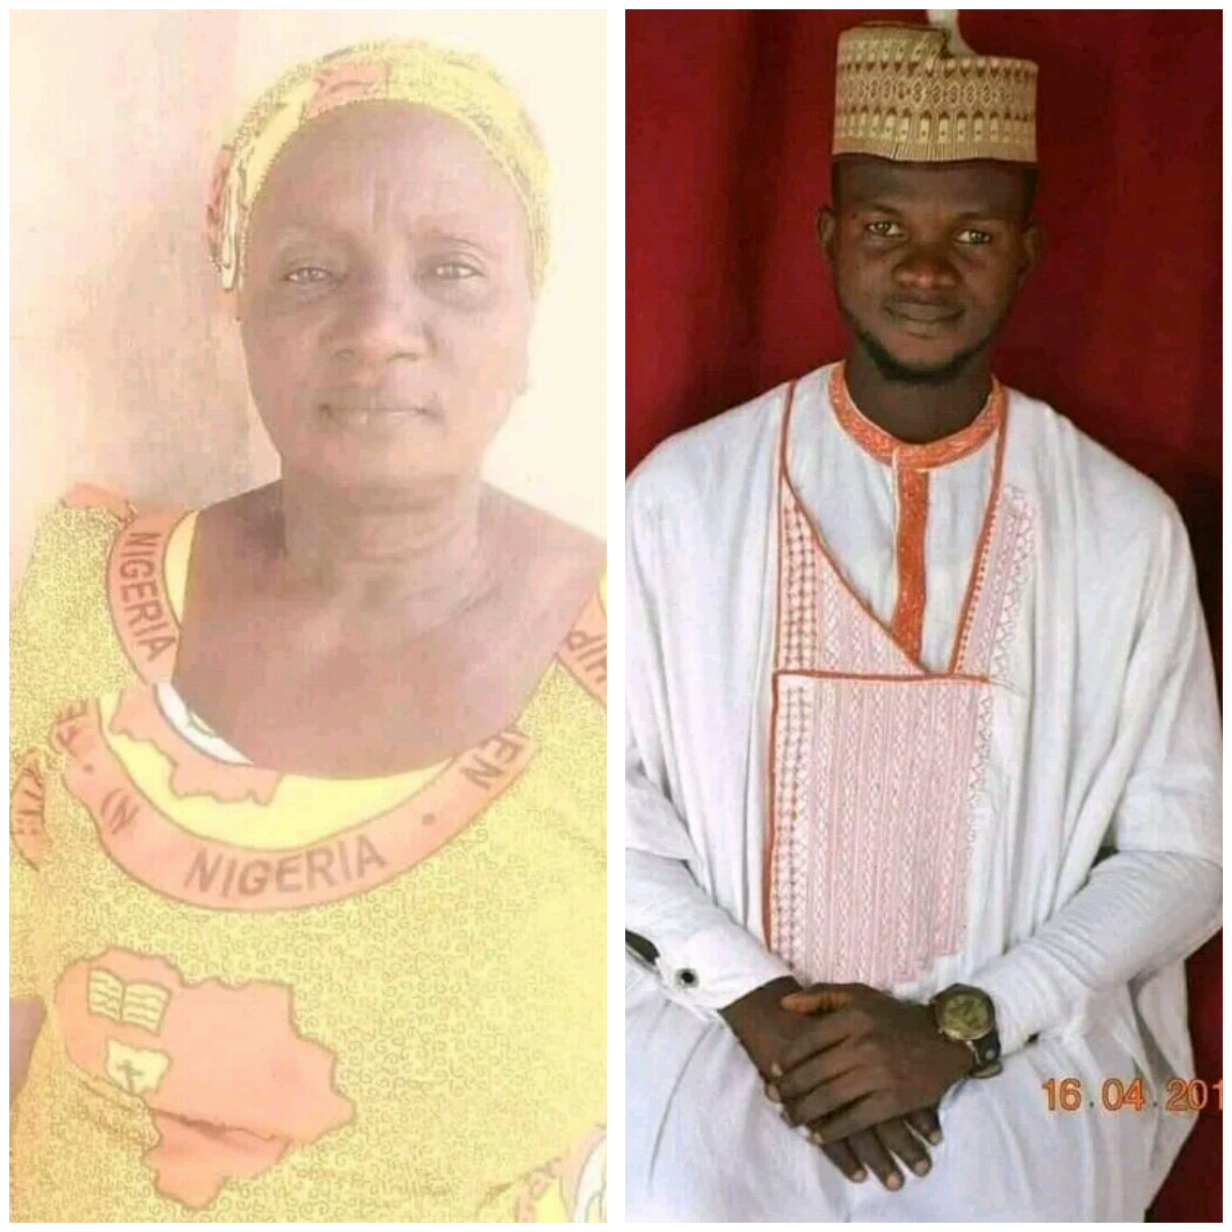 WOMAN DIES A DAY AFTER THE BURIAL OF HER ONLY CHILD WHO WAS BRUTALLY MURDERED IN ADAMAWA. PHOTOS